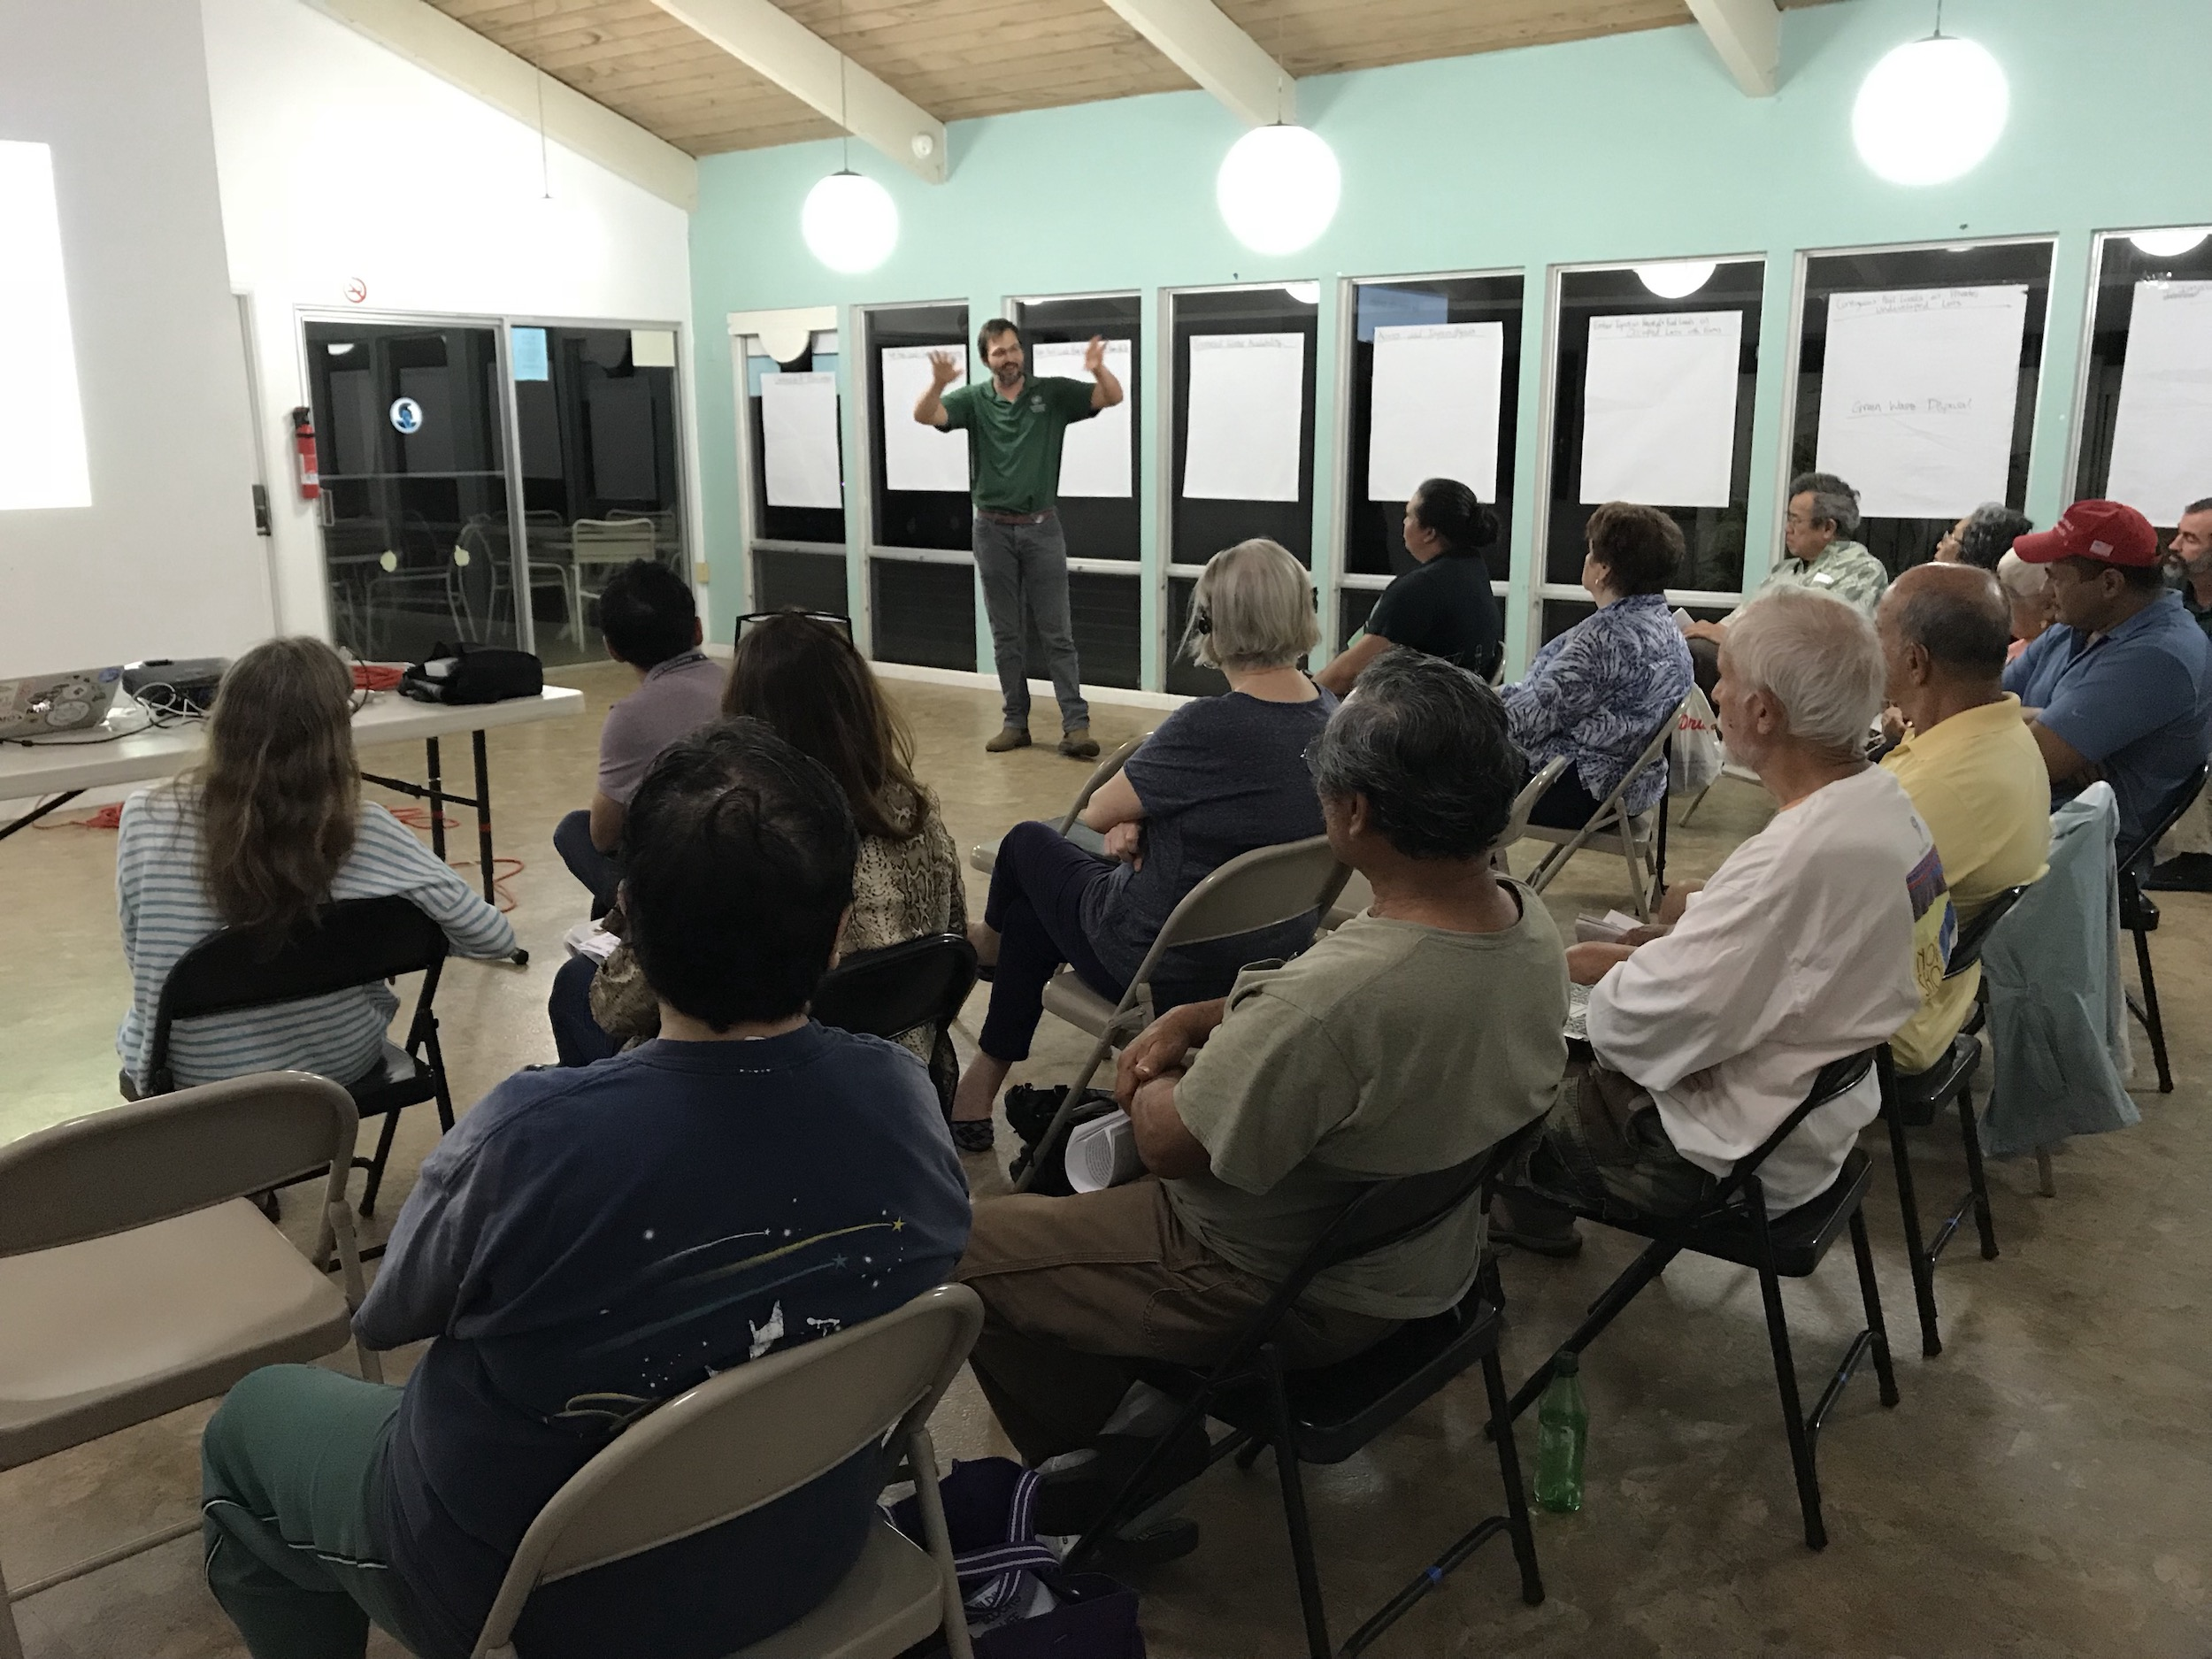 Dr. Clay Trauernicht of UH CTAHR Cooperative Extension and Pacific Fire Exchange encourages the community members in the room to continue to take proactive action in the neighborhood to prevent wildfire loss.